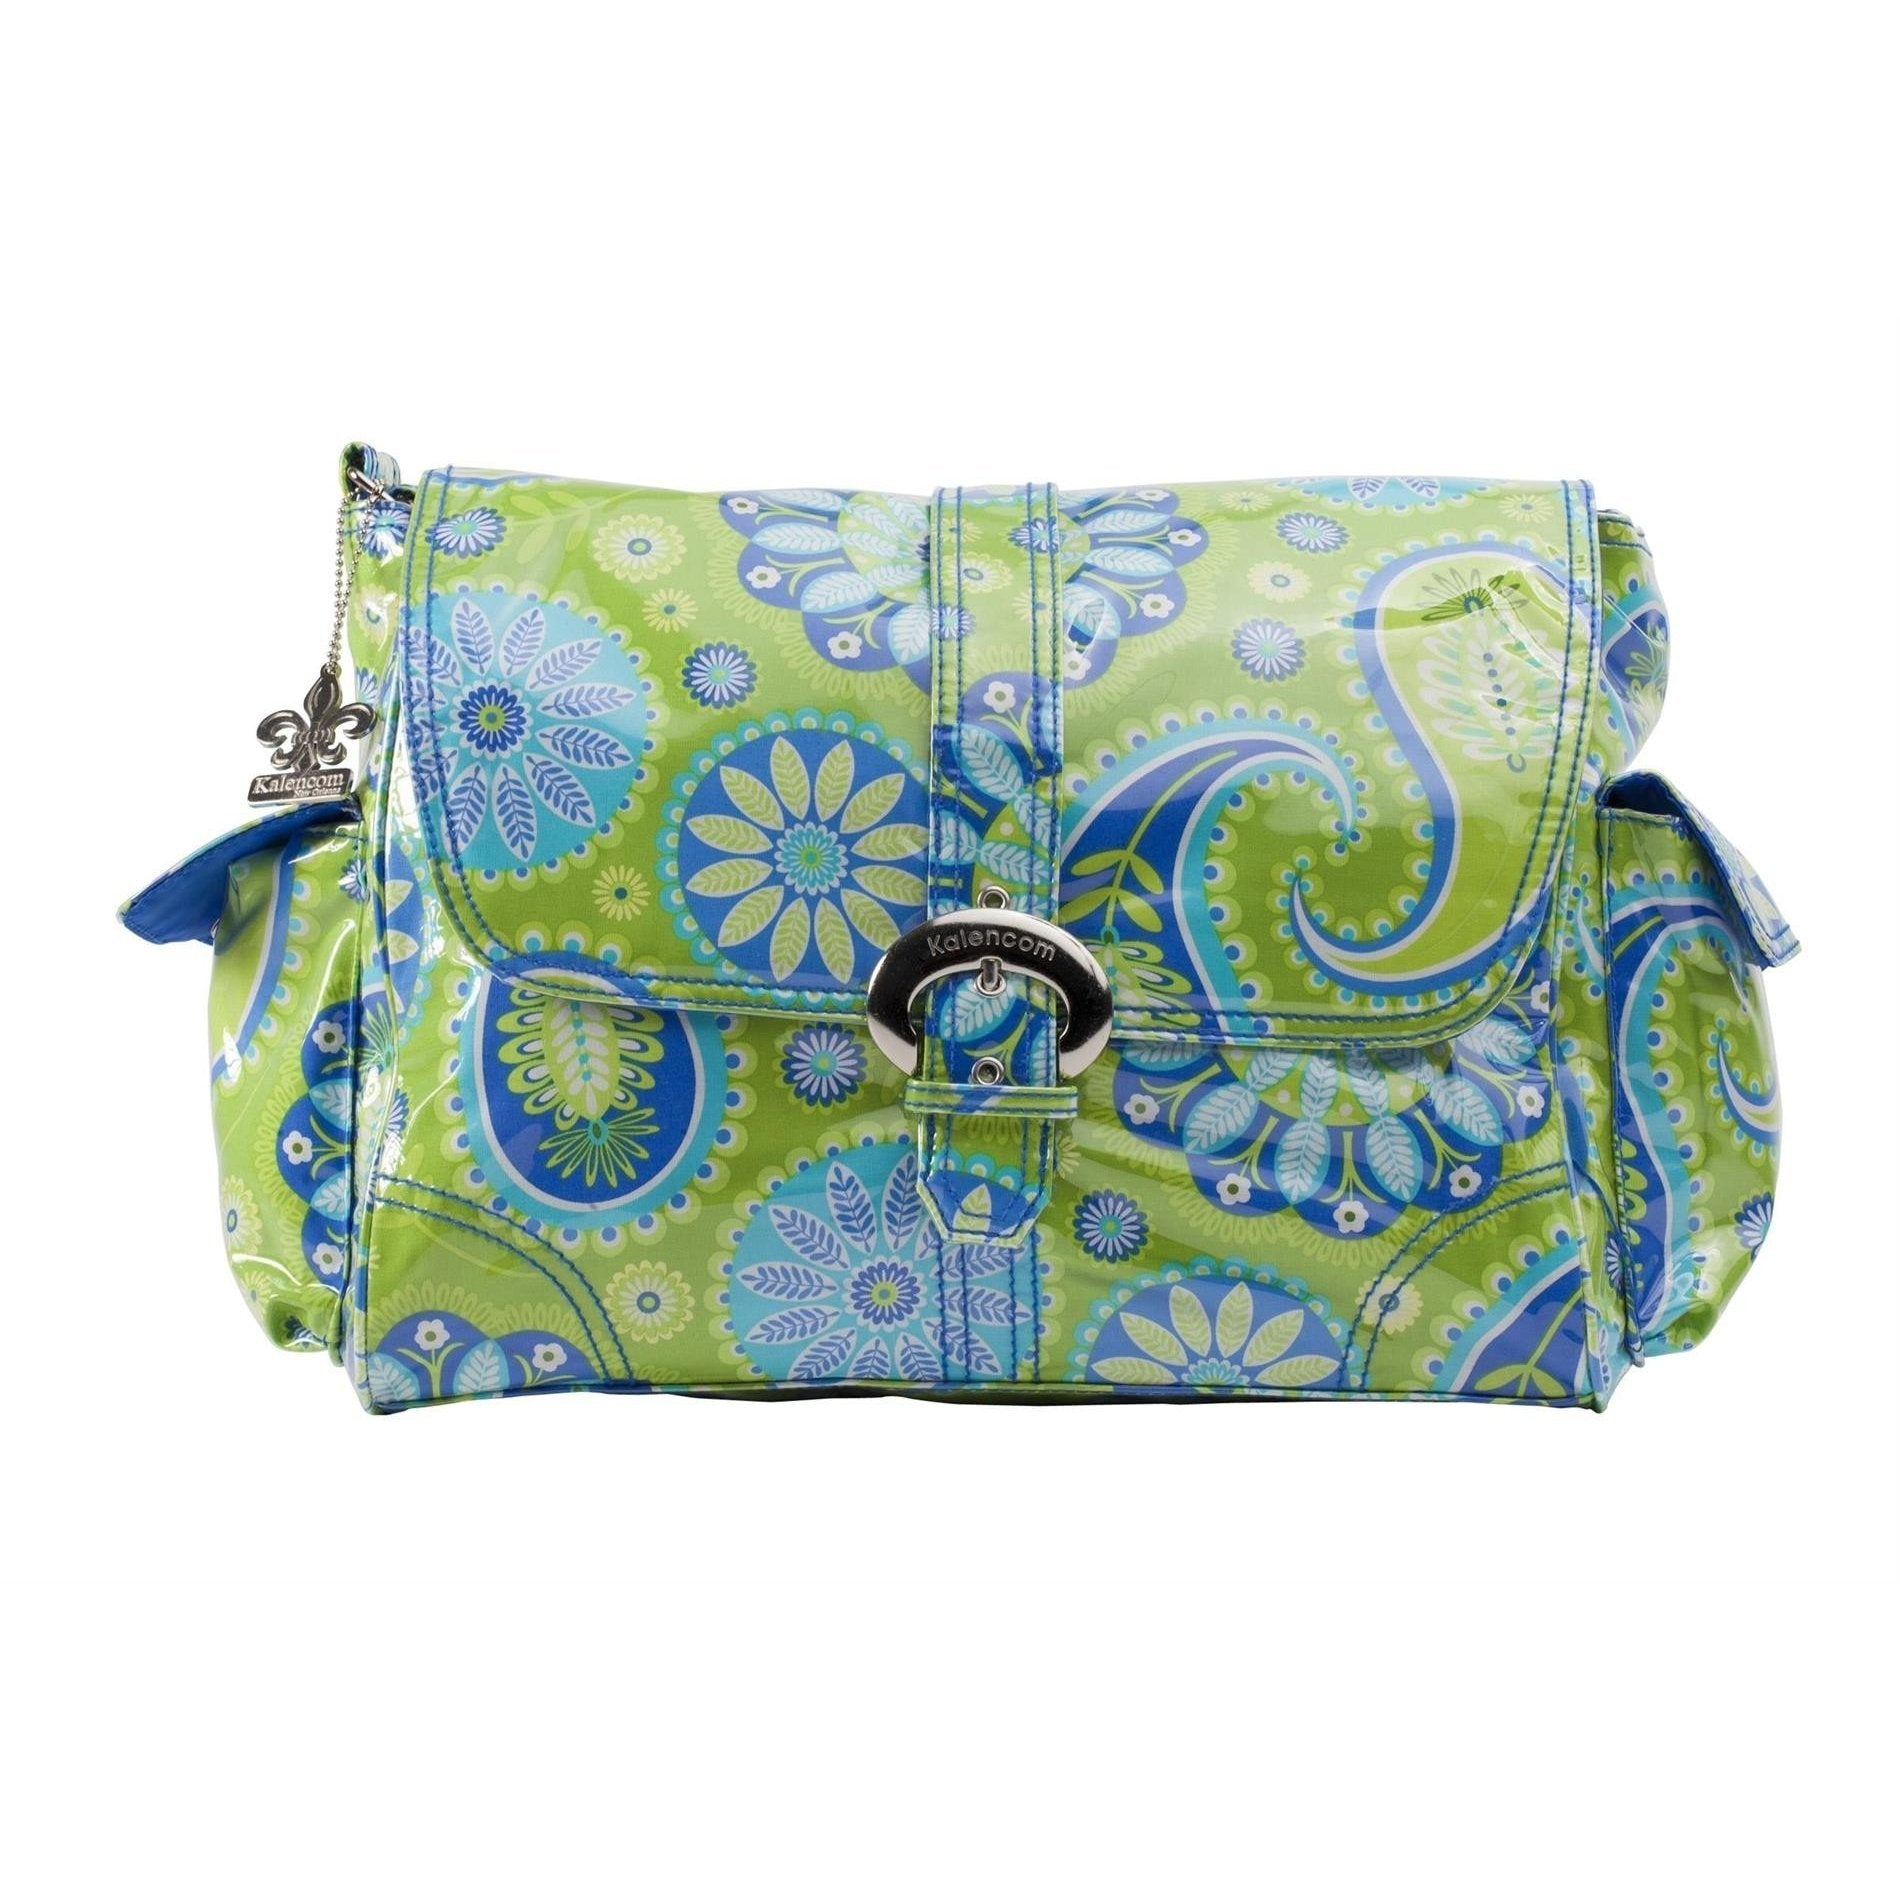 Gypsy Paisley Green Laminated Buckle Diaper Bag | Style 2960 - Kalencom-Diaper Bags-Default-Jack and Jill Boutique